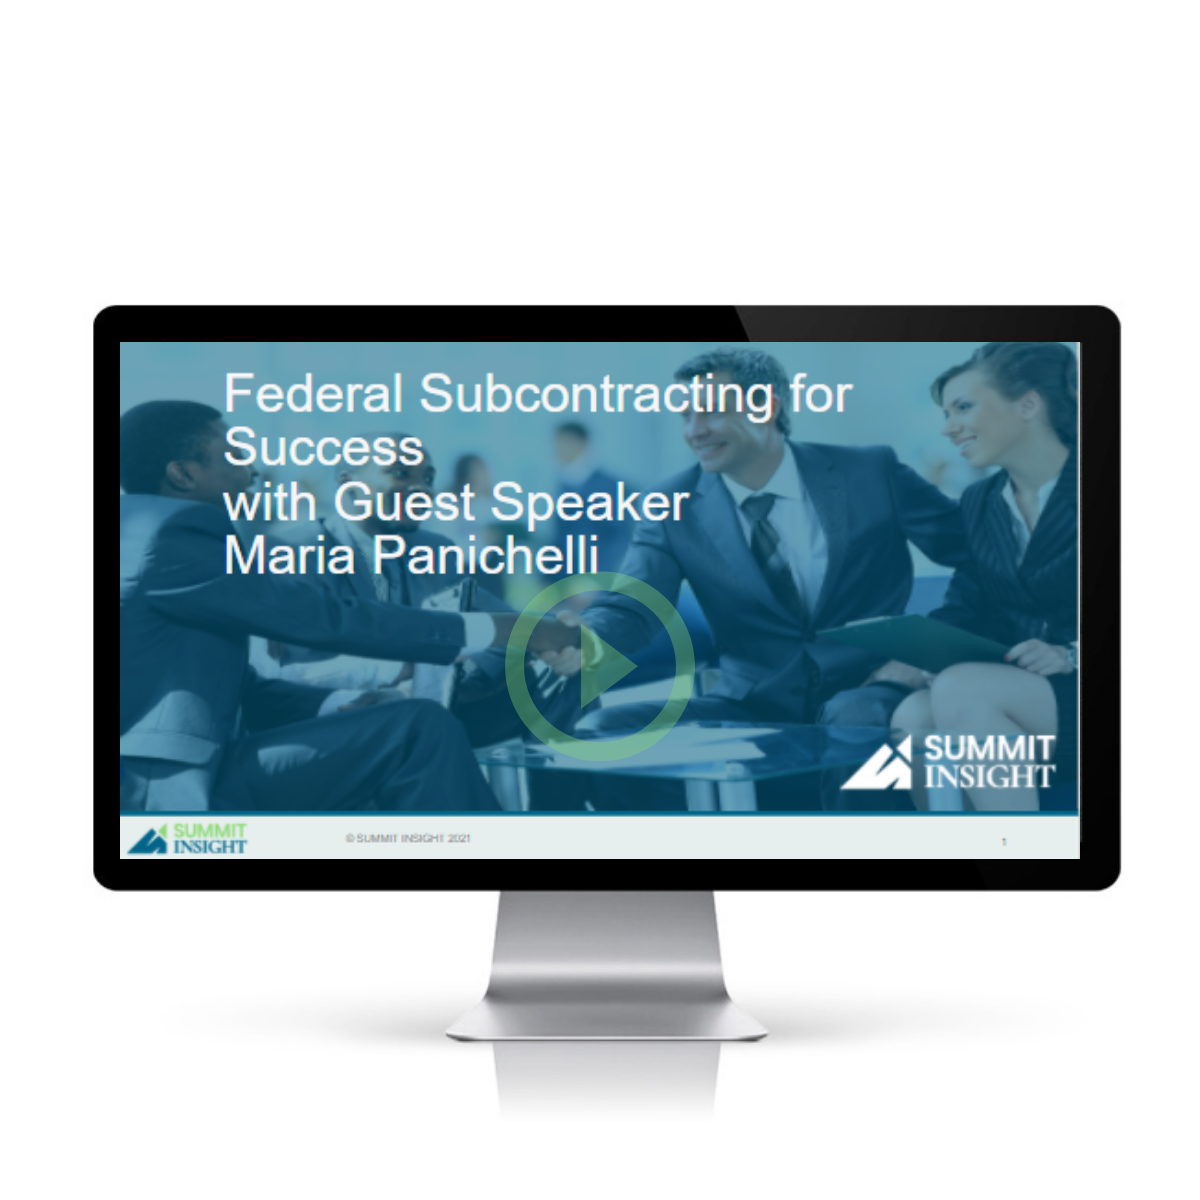 Federal Subcontracting for Success